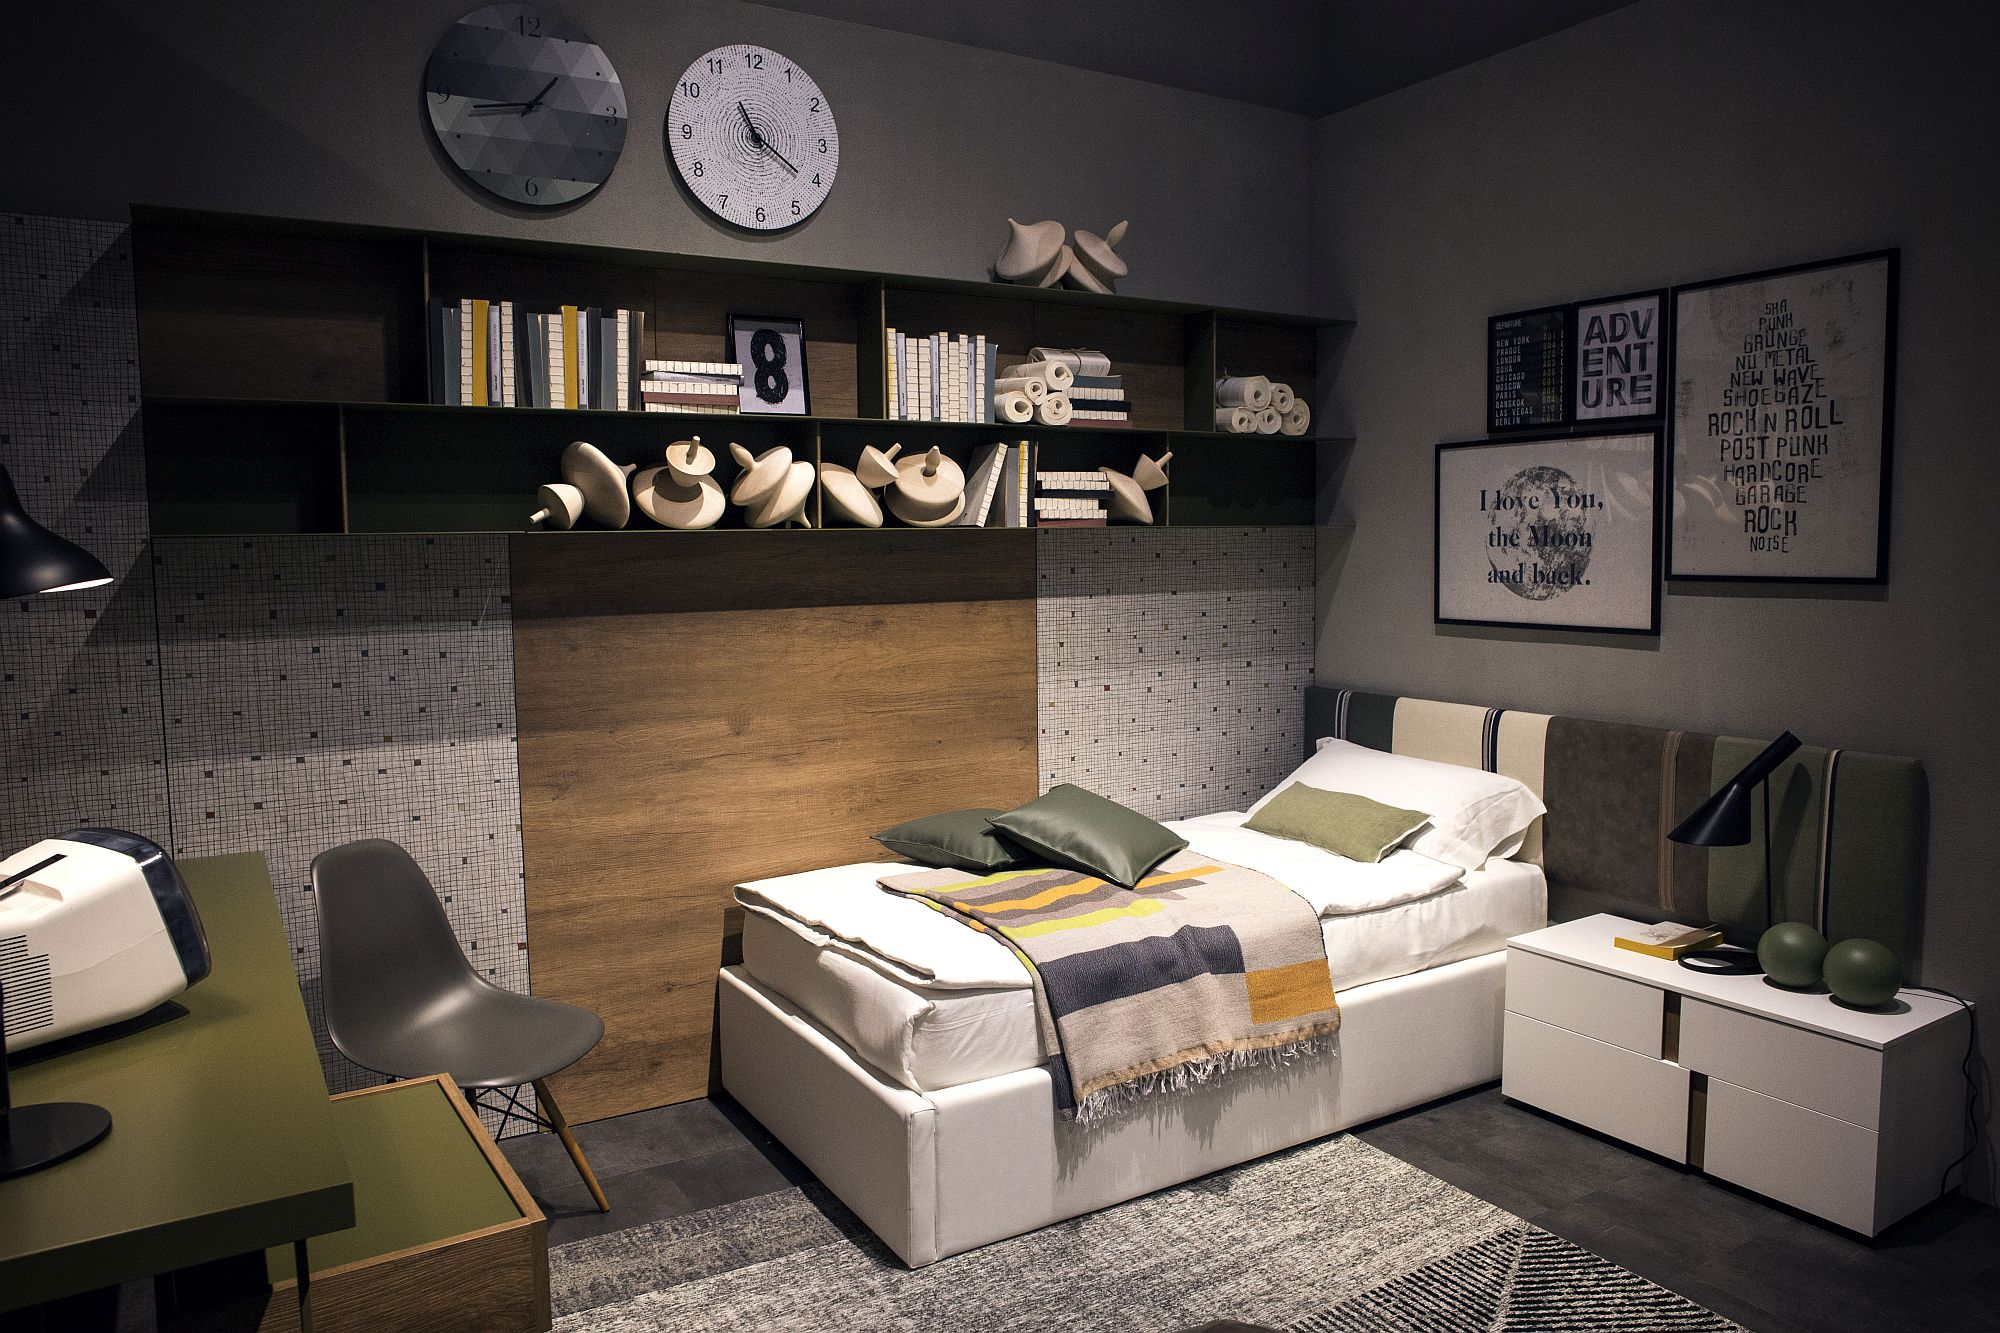 Smart bedroom design relies on spatial arrangment and space-savvy furniture